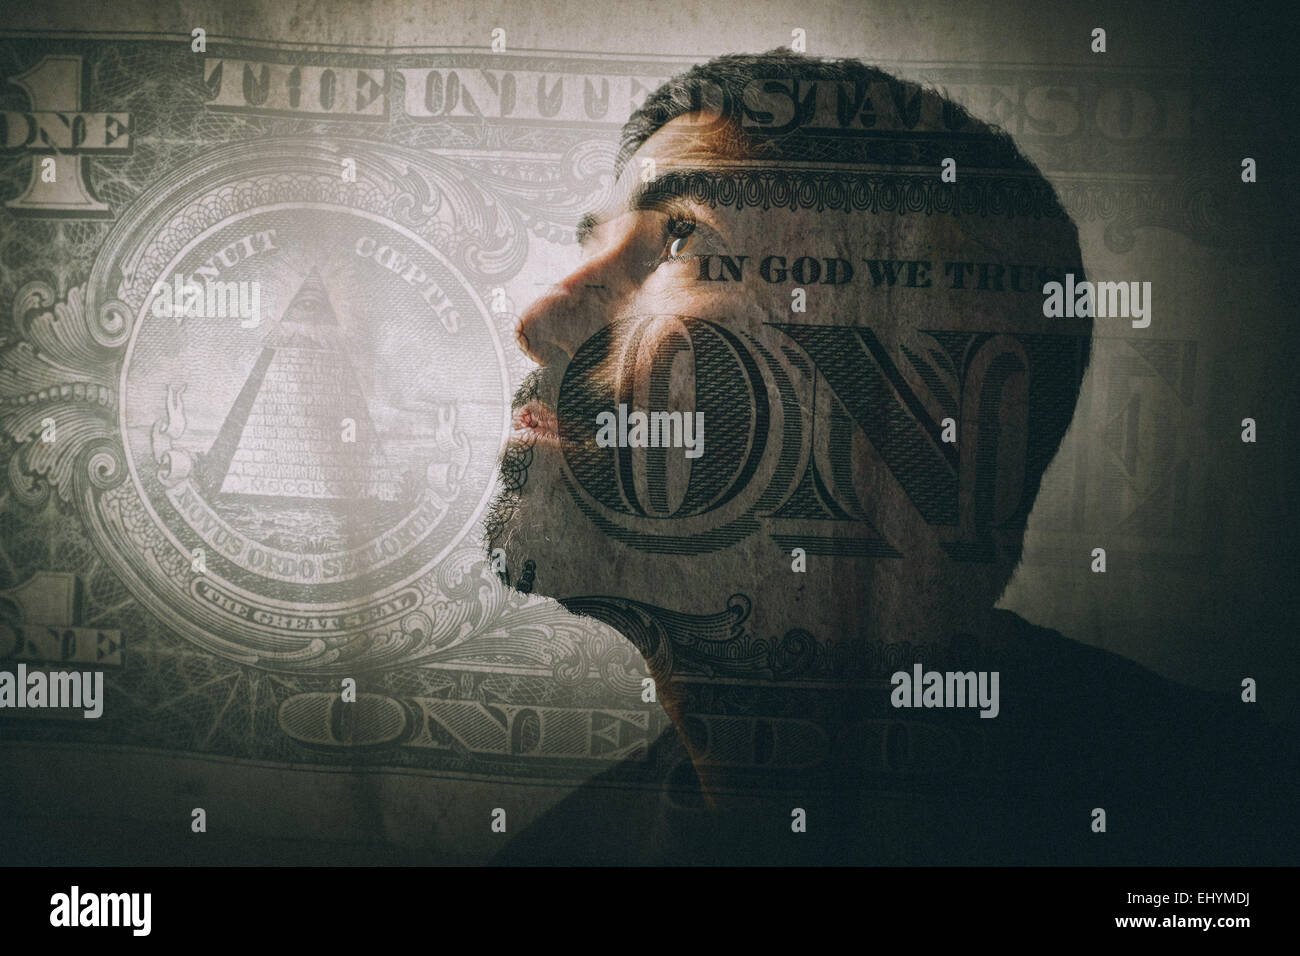 Double exposure of a man looking up and a one dollar bill - Stock Image